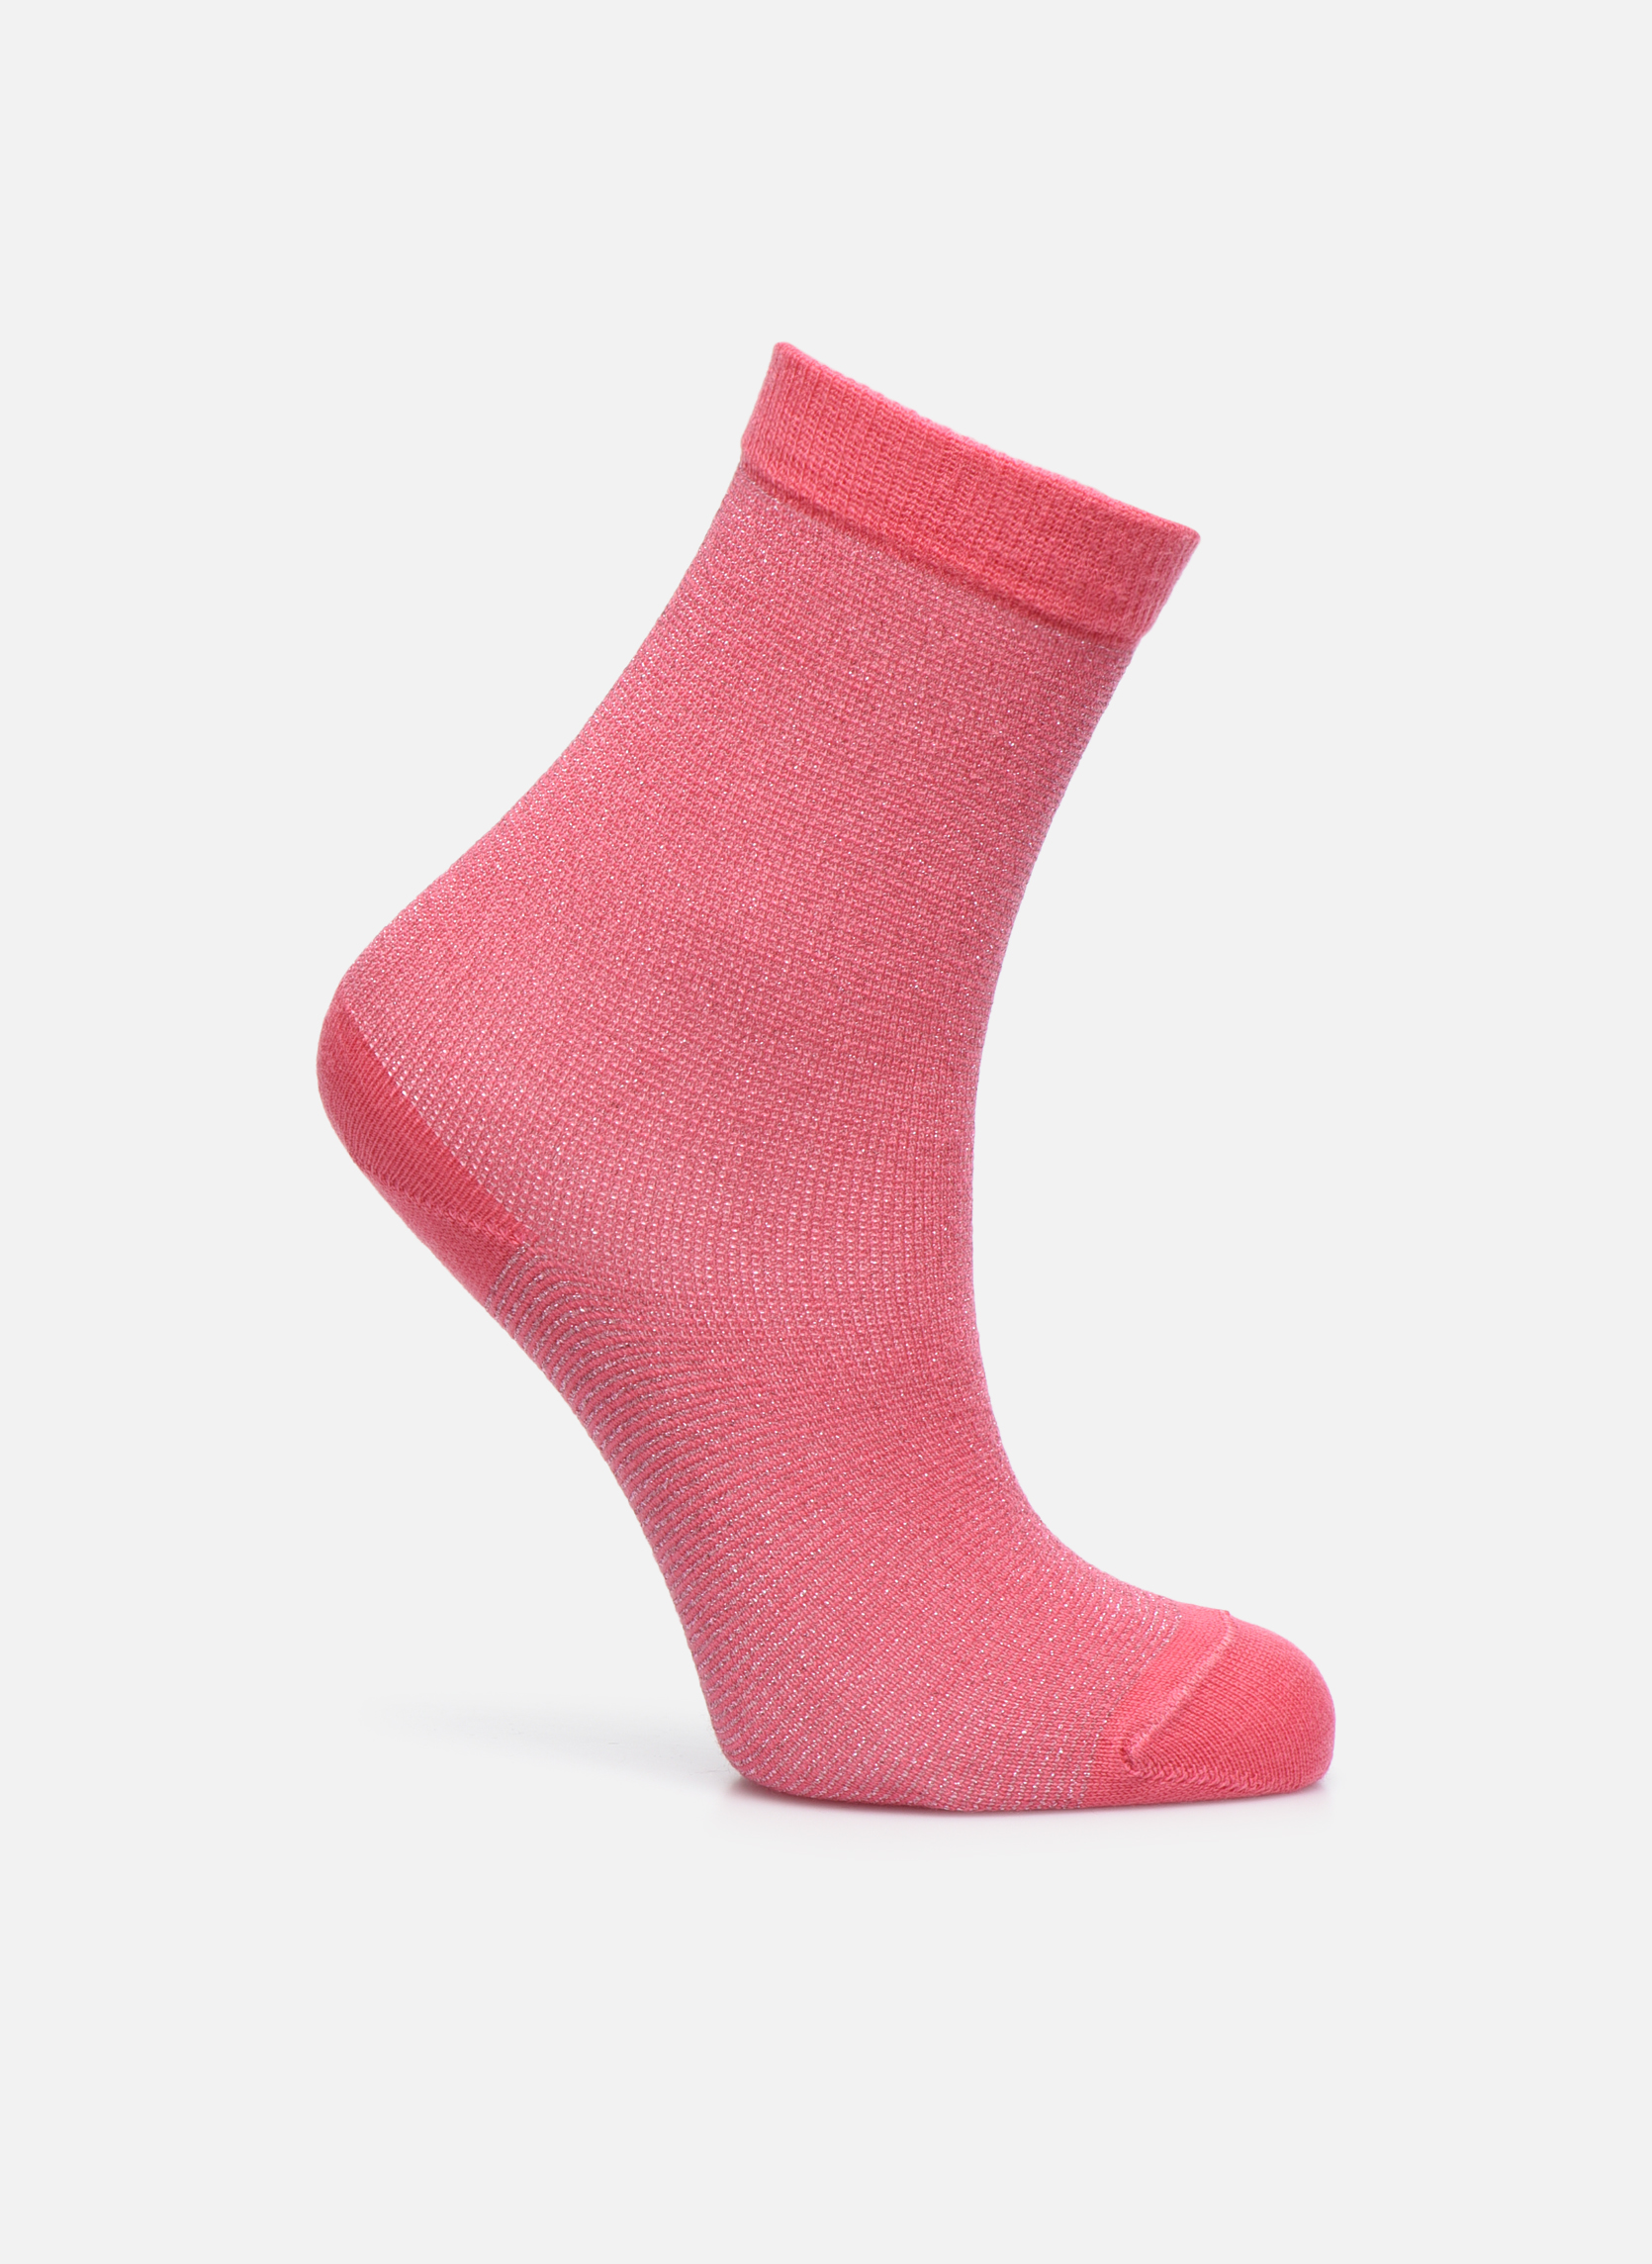 Chaussettes GLITTER 051 - rose